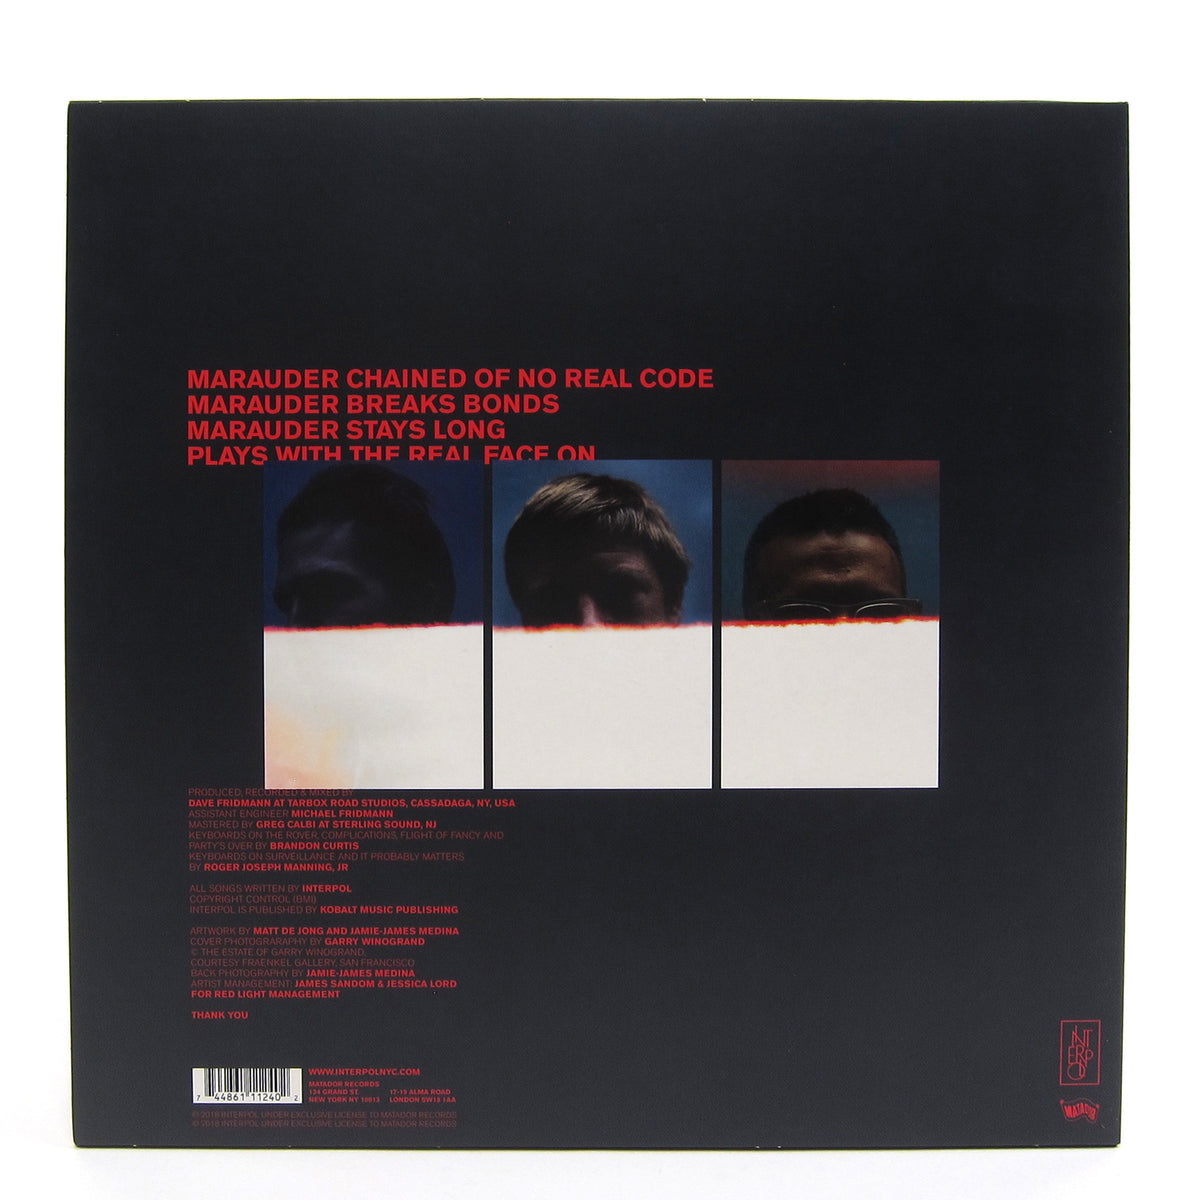 Interpol: Marauder (Indie Exclusive Colored Vinyl) Vinyl LP